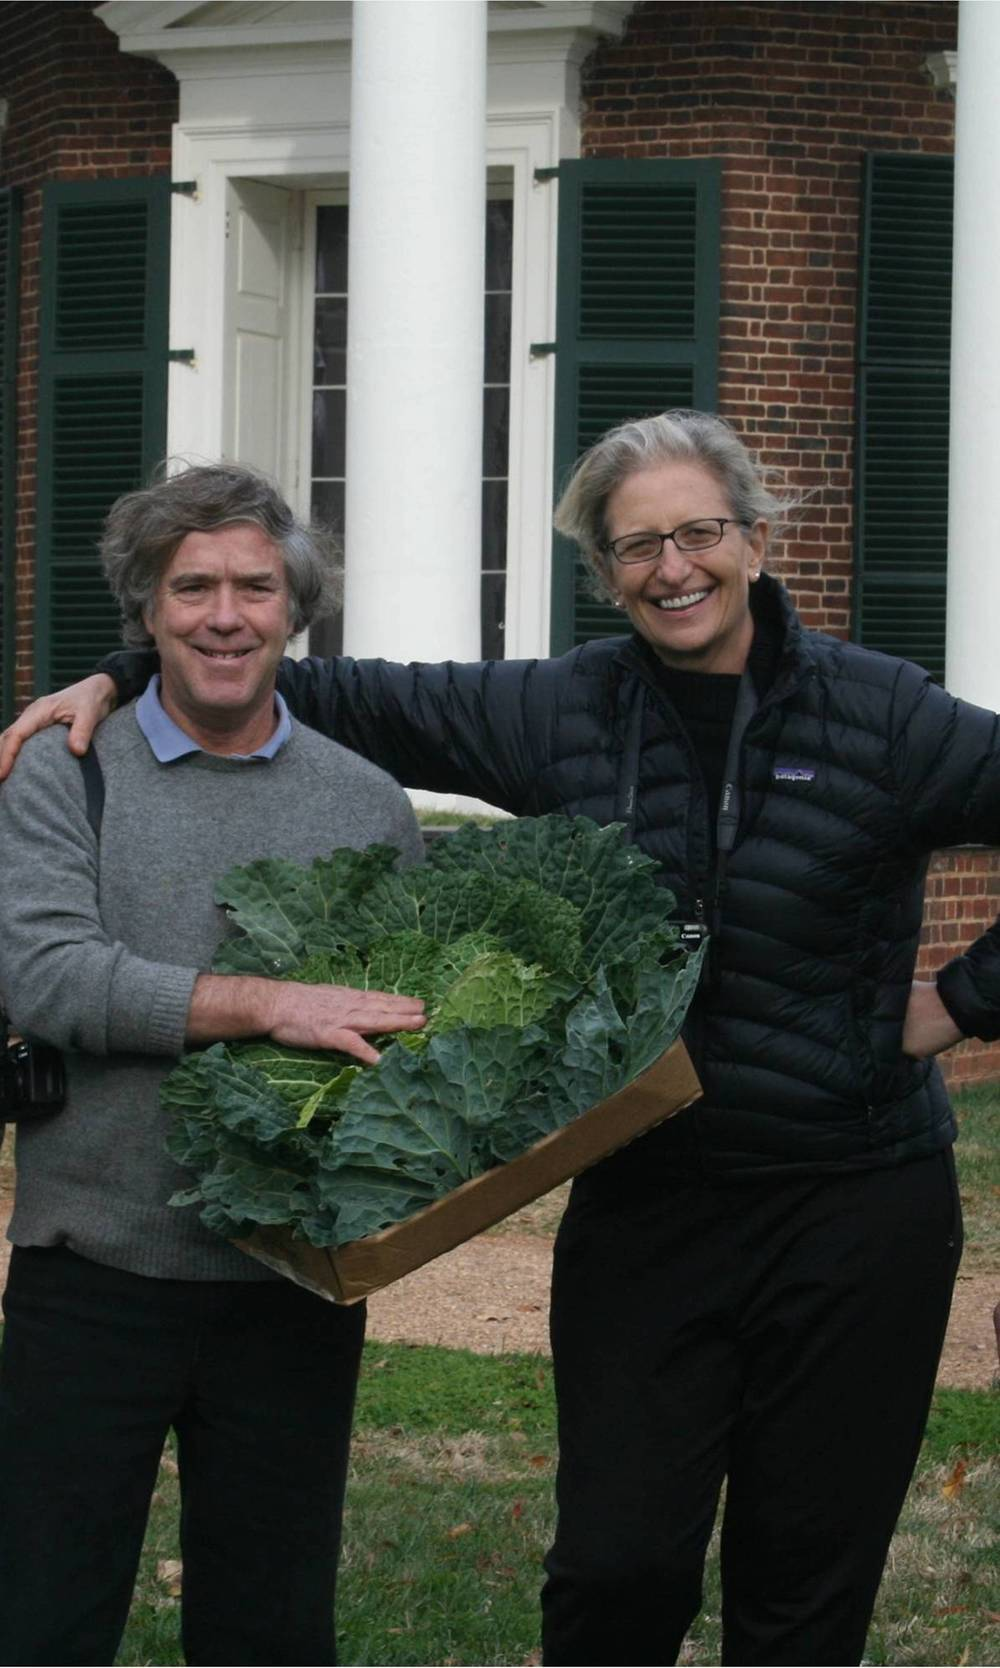 Hatch with Annie Liebovitz, November, 2011, photo by Lisa Stites, courtesy of Thomas Jefferson Foundation